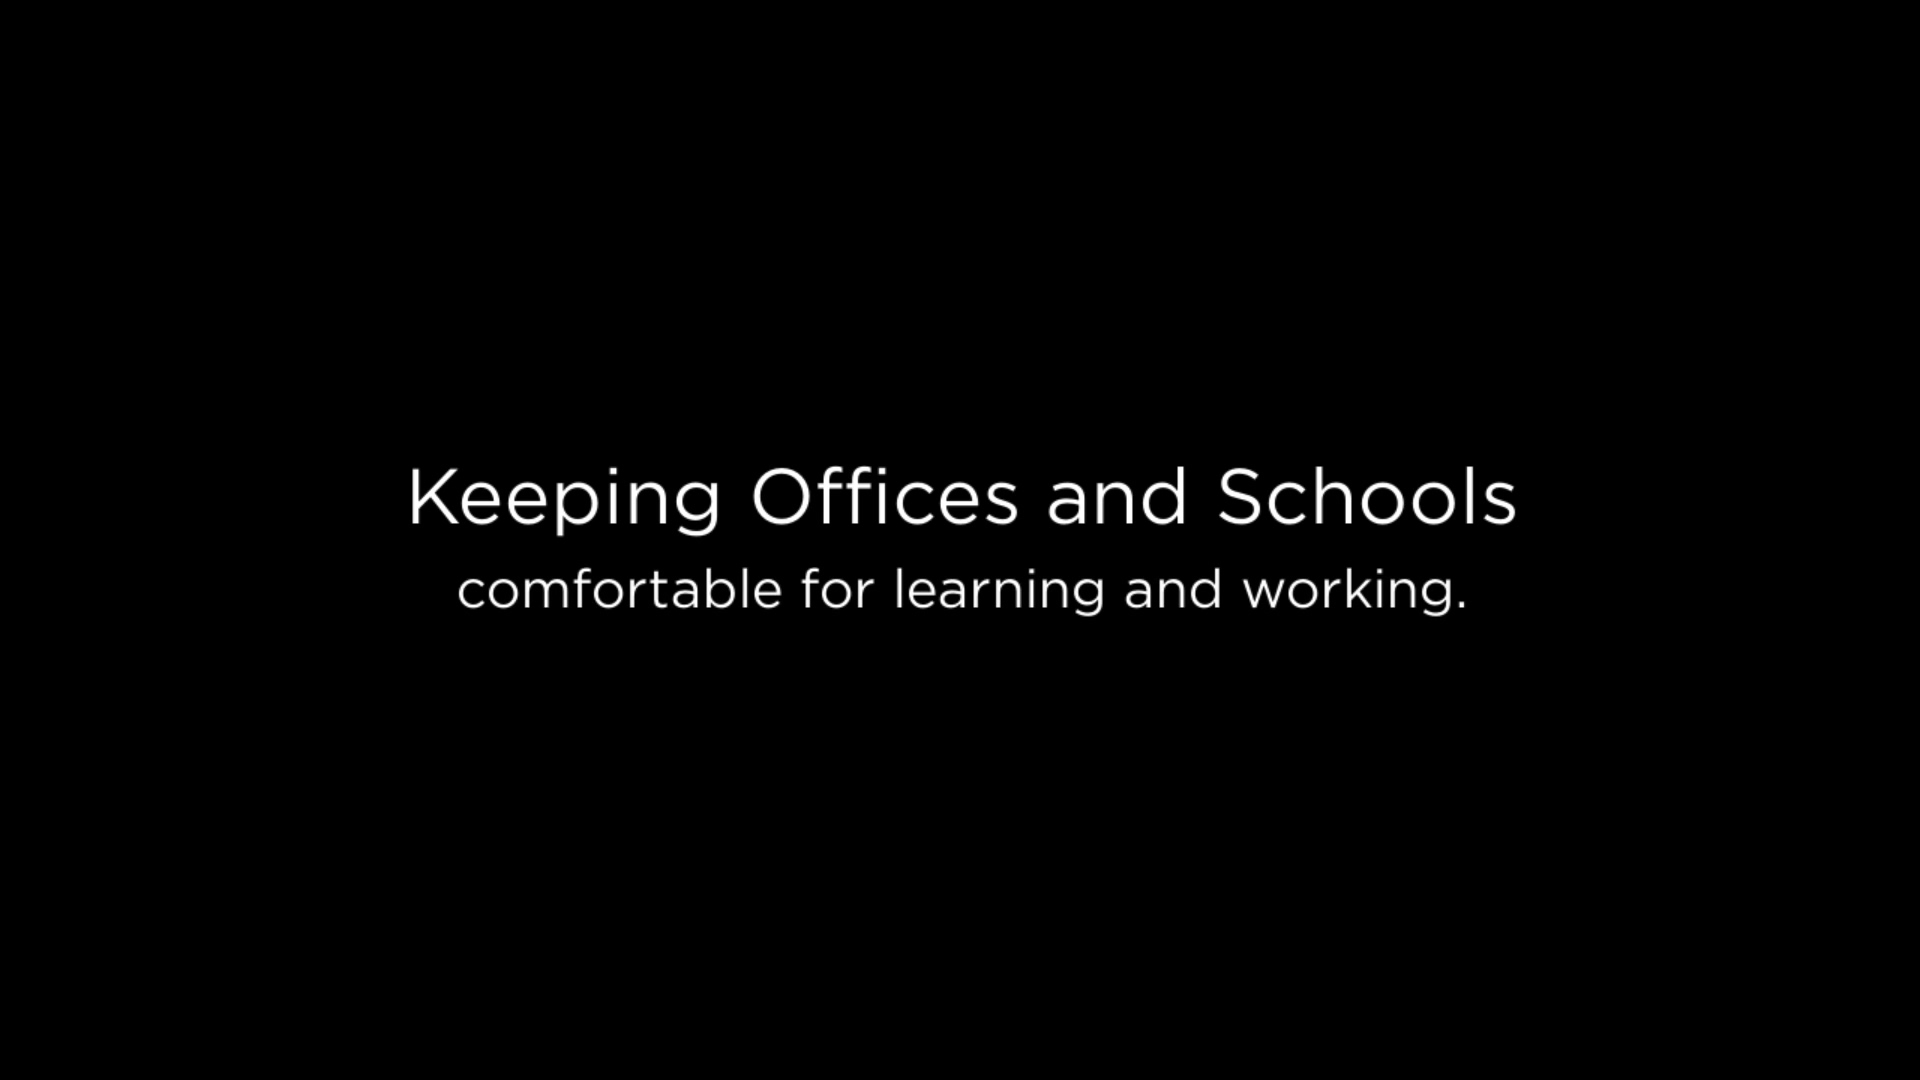 Offices_and_Schools_1080p